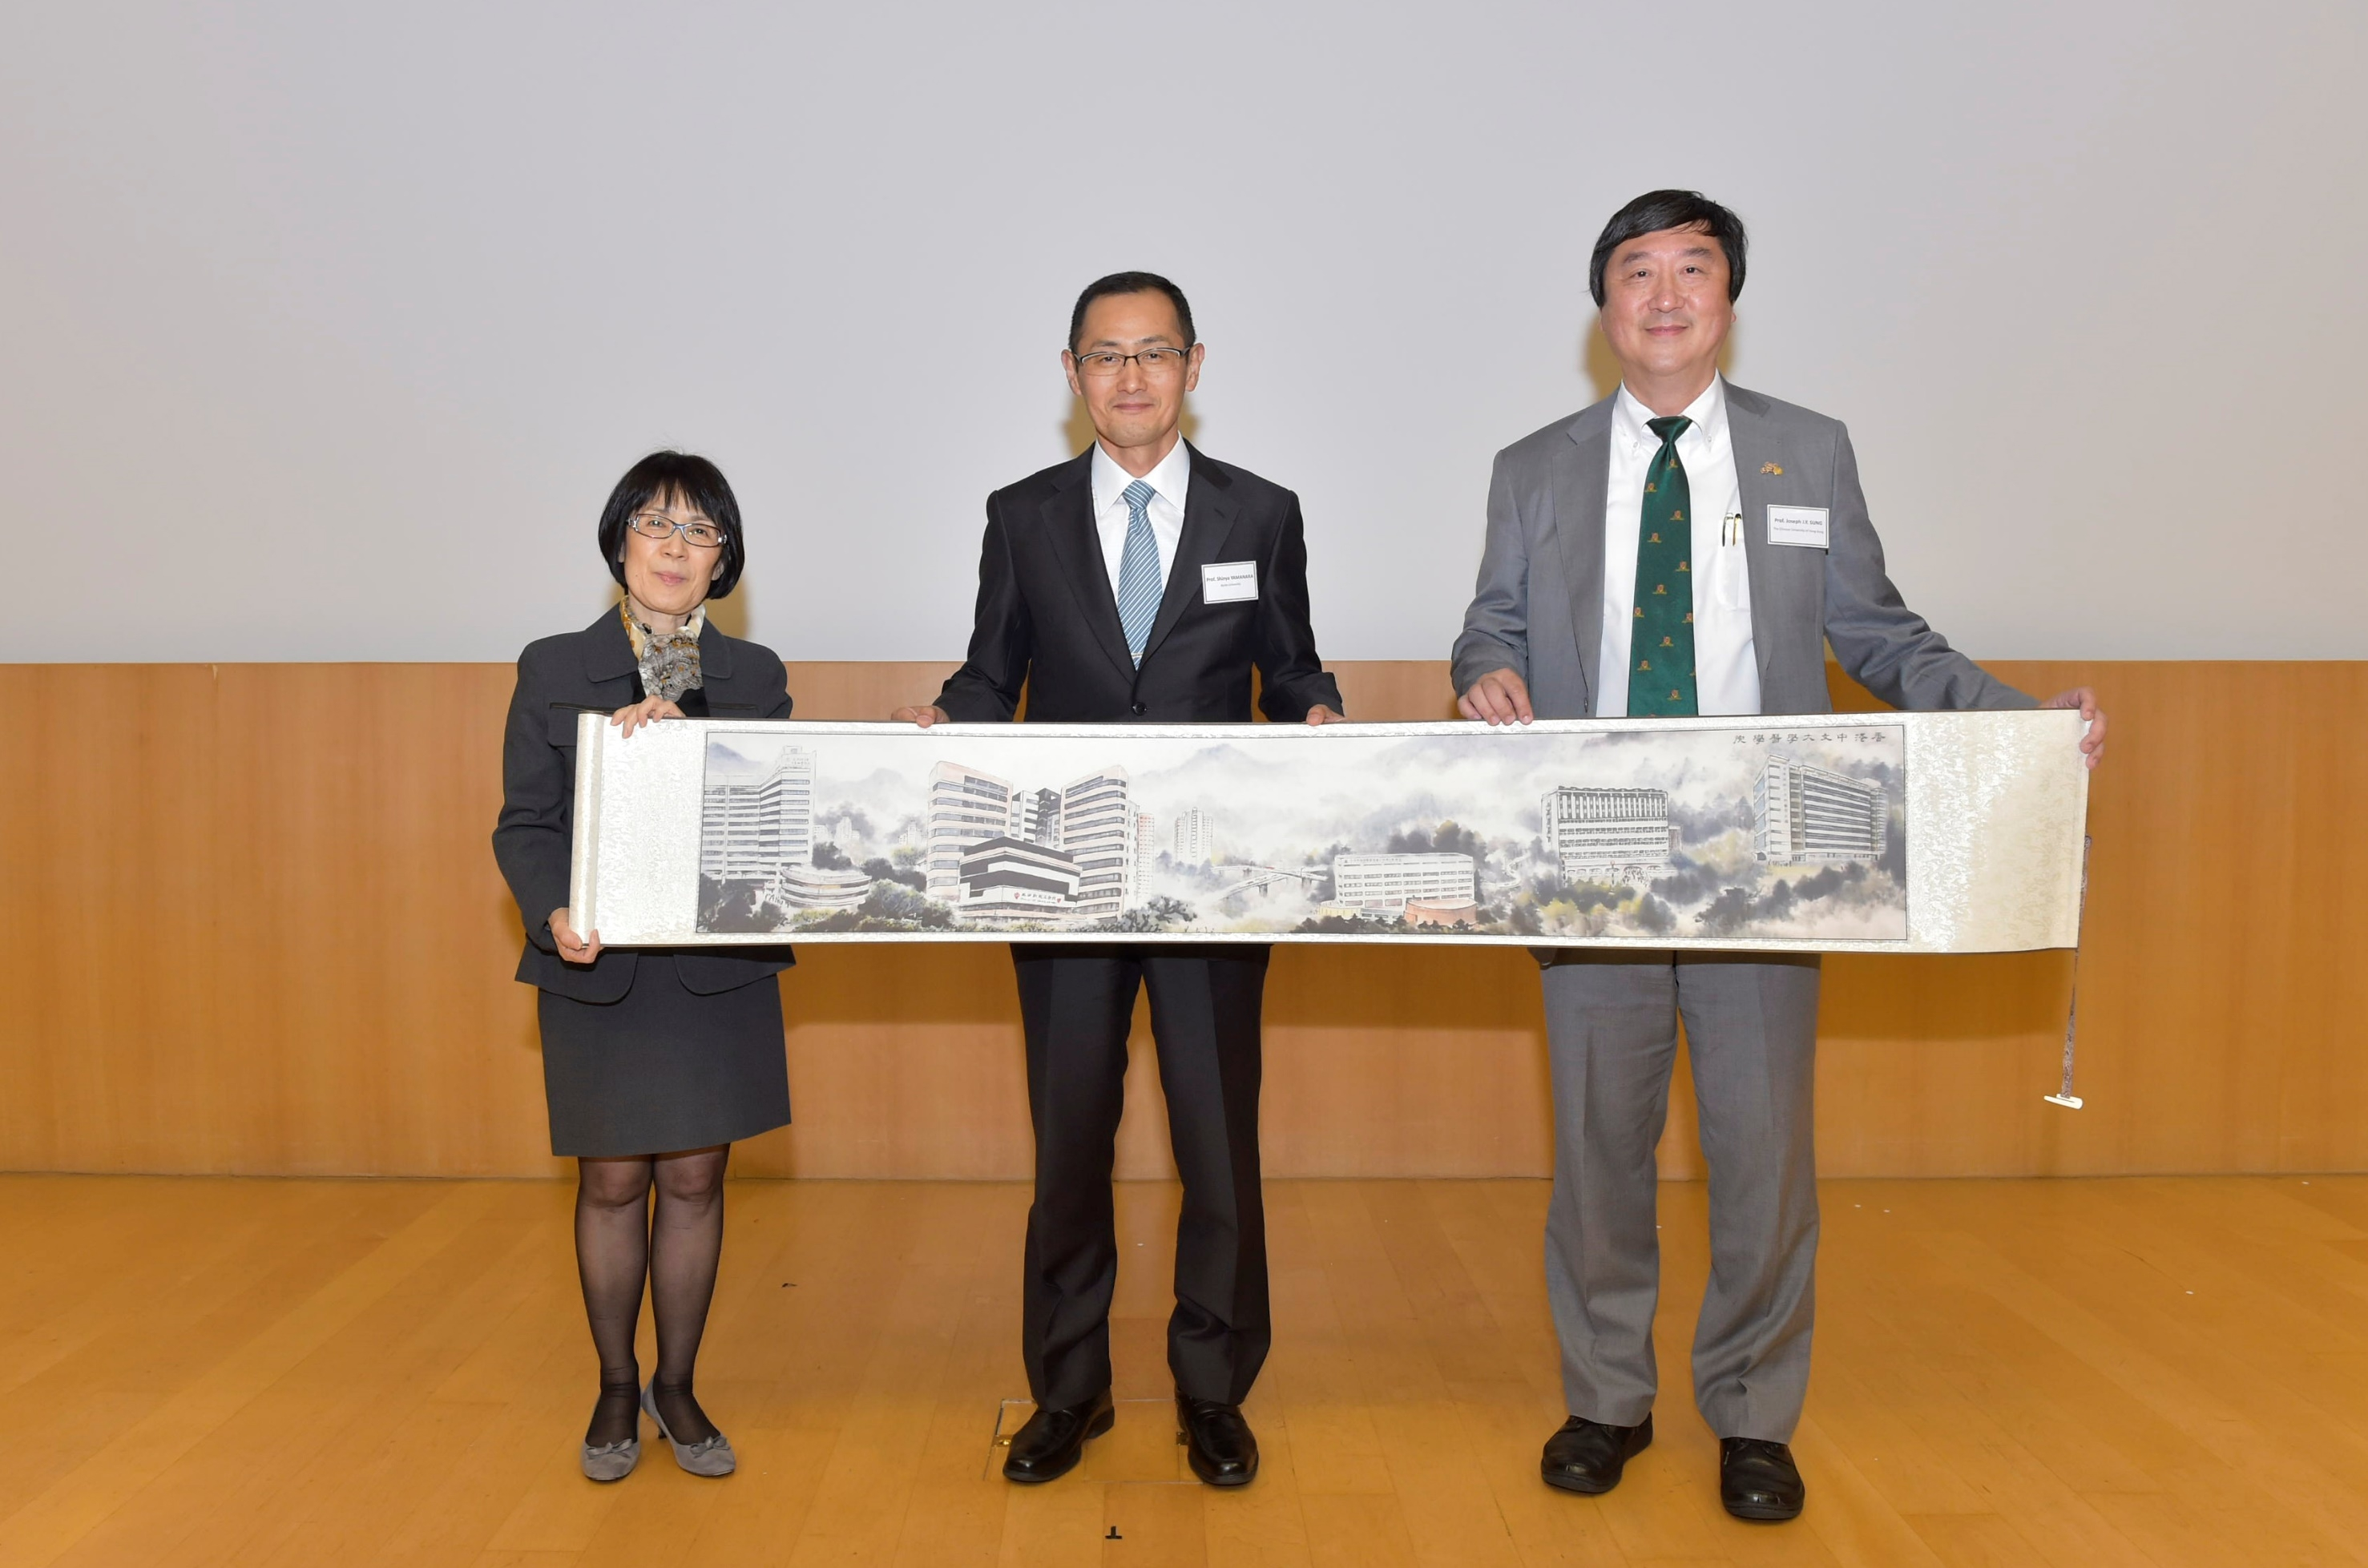 Prof. Joseph J.Y. Sung, Vice-Chancellor and President, CUHK (right) and Prof. Fanny M.C. Cheung, Pro-Vice-Chancellor and Vice-President, CUHK (left) present a souvenir to Prof. Shinya Yamanaka.